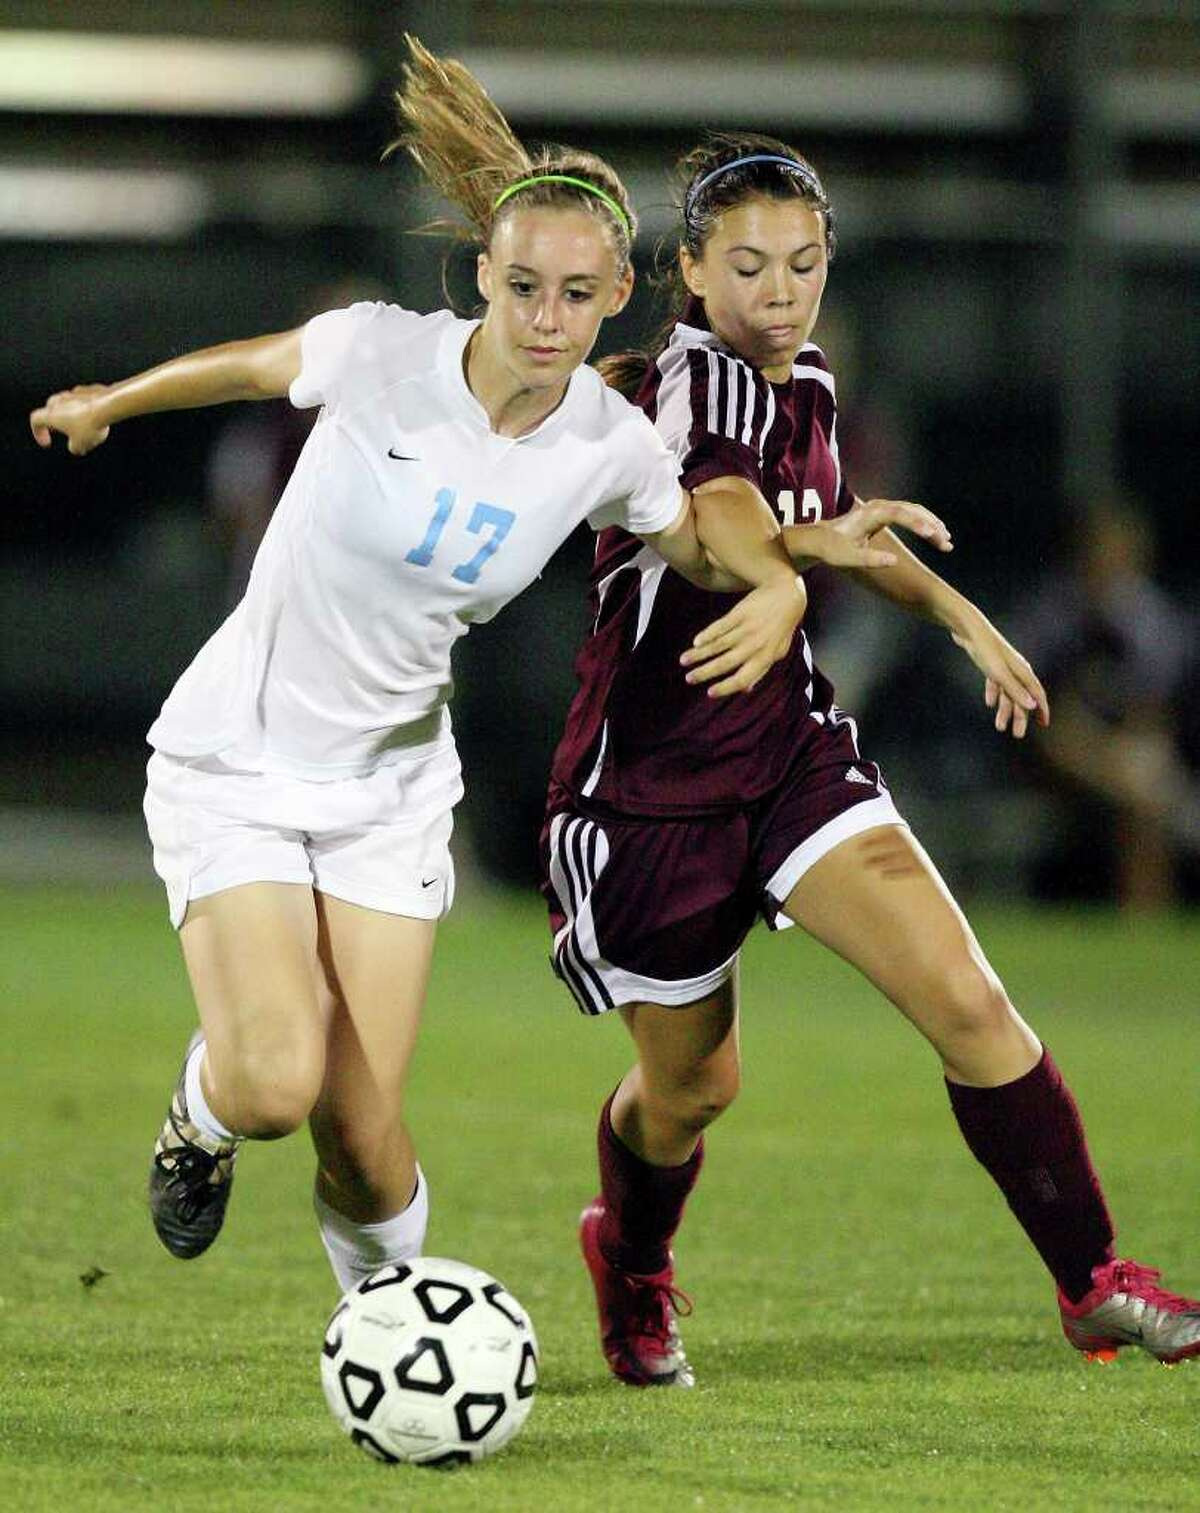 Johnson's Courtney Kukes and Marshall's Cora Barrera struggle for position during second half action Friday April 1, 2011 at Blossom Soccer Stadium. Johnson won 3-0. (PHOTO BY EDWARD A. ORNELAS/eaornelas@express-news.net)